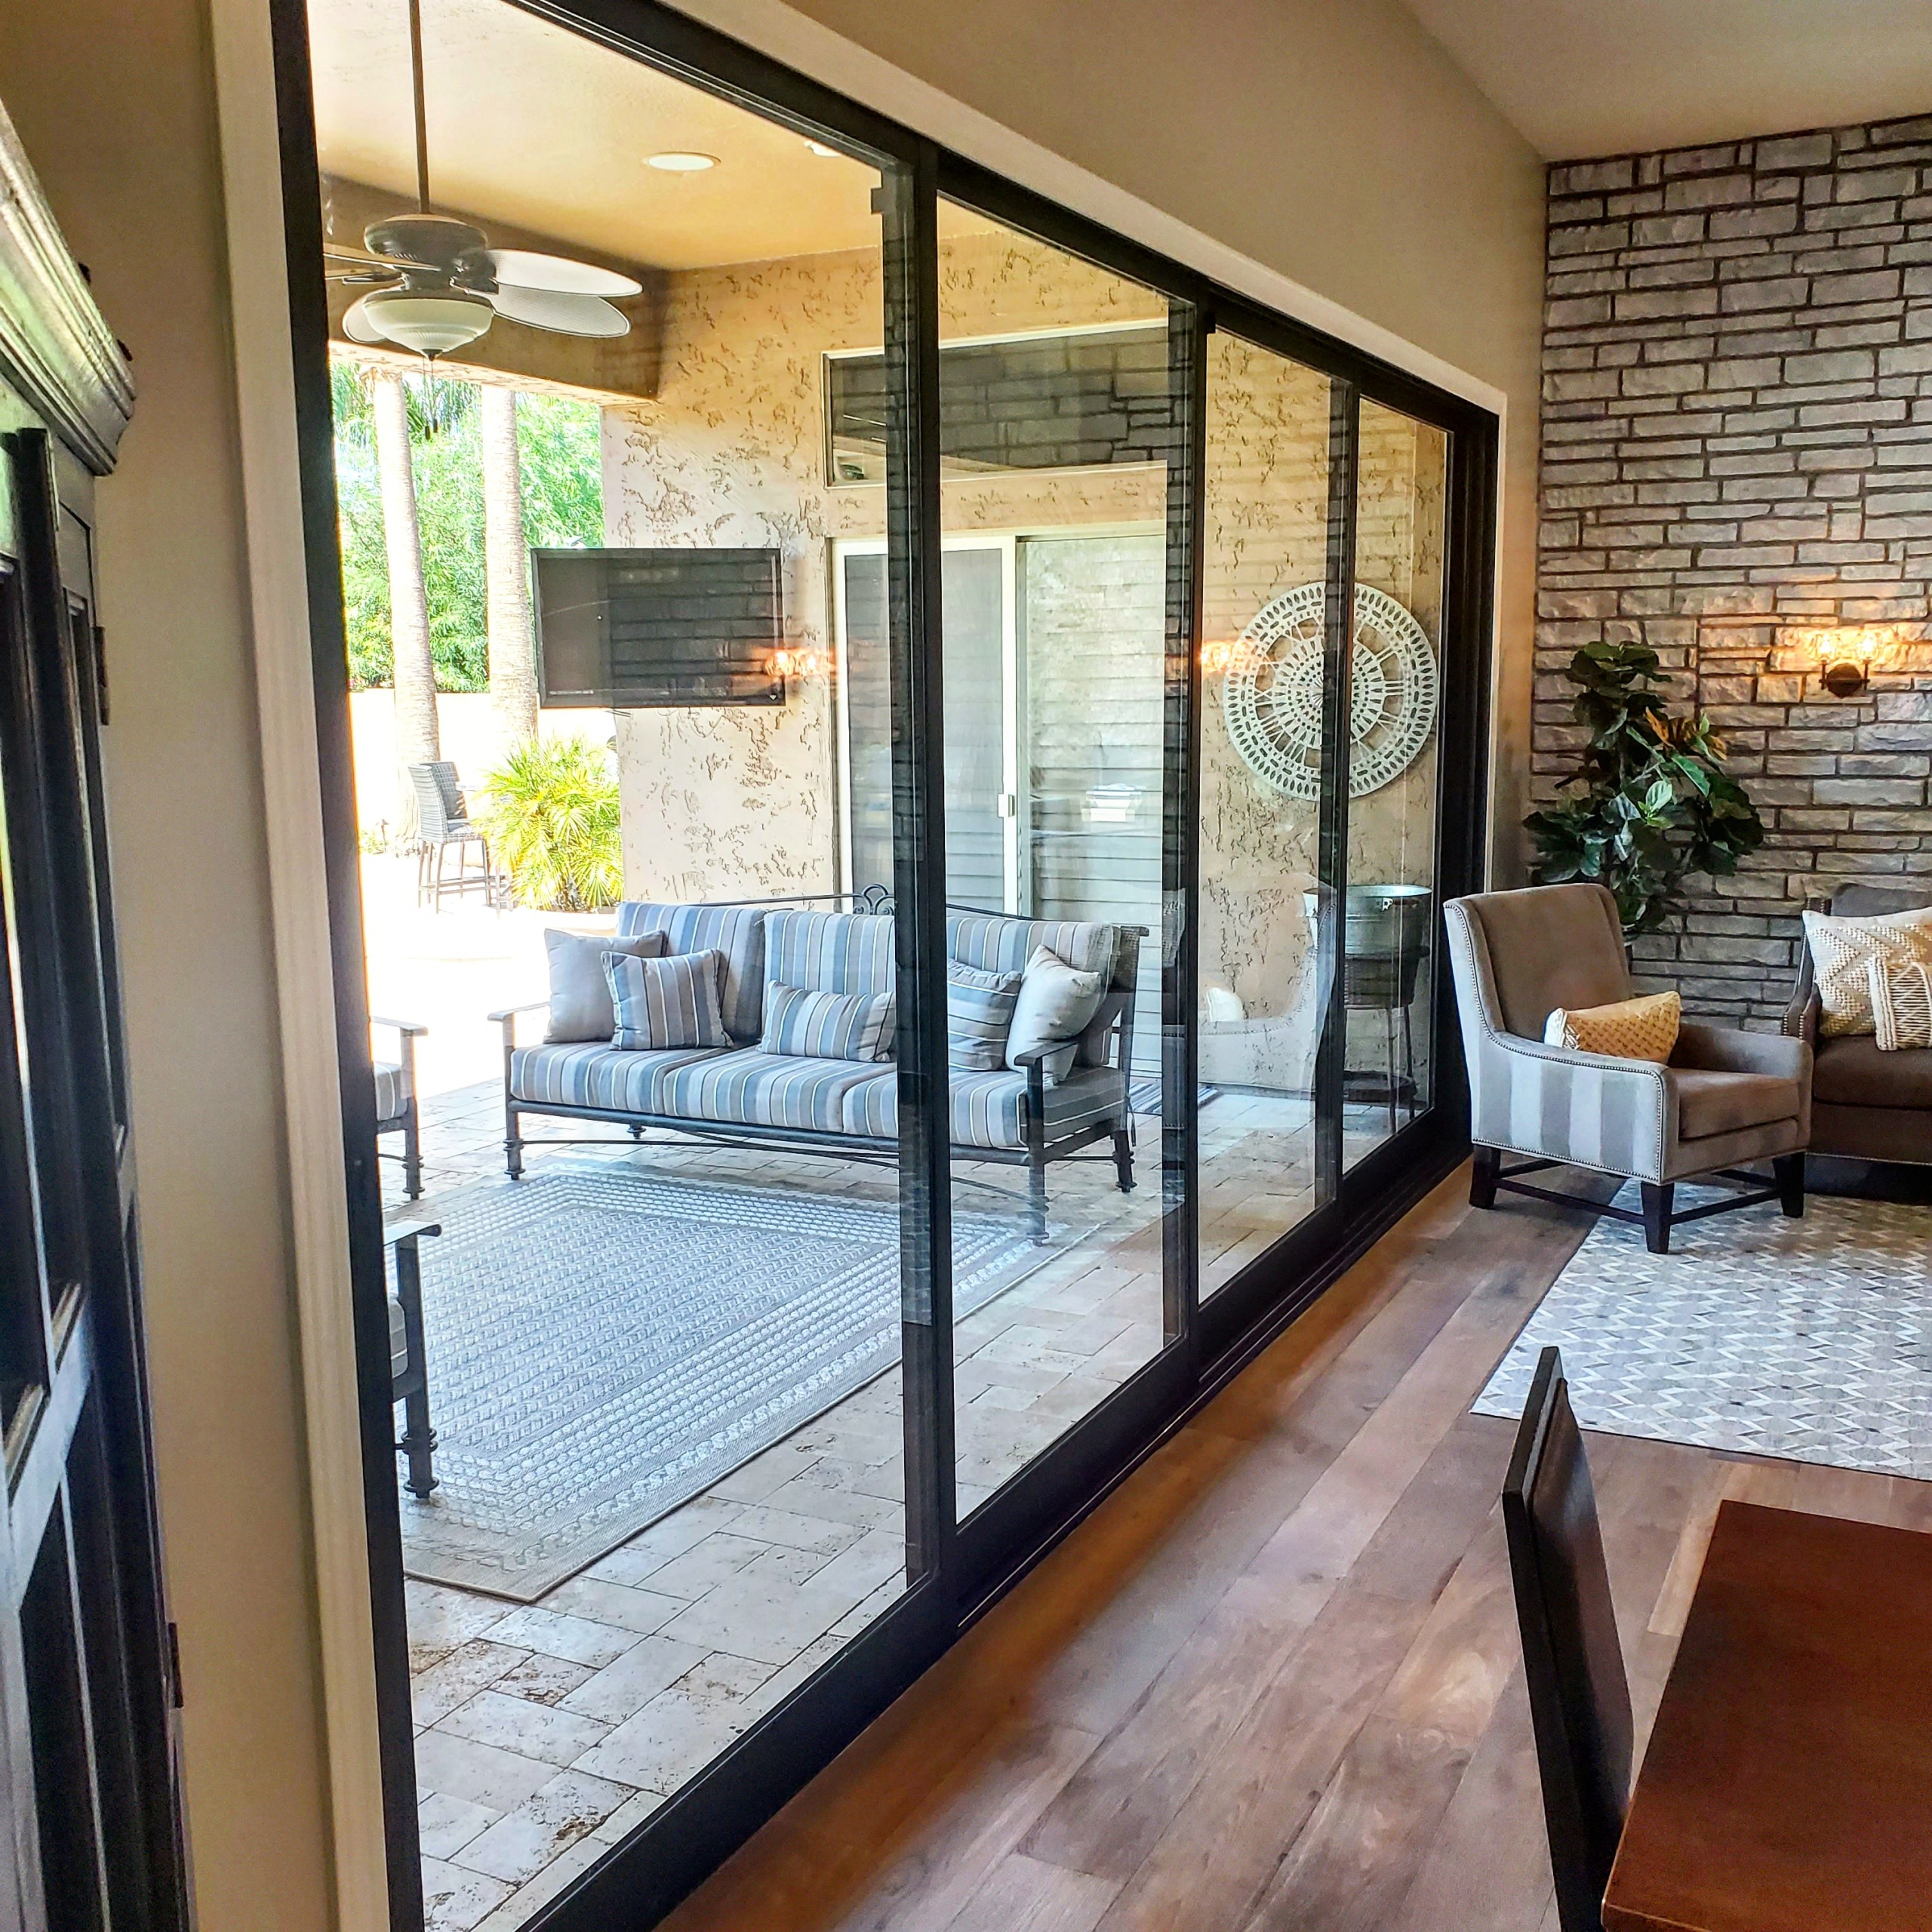 Arizona Window and Door in Scottsdale and Tucson showing large panel doors of home